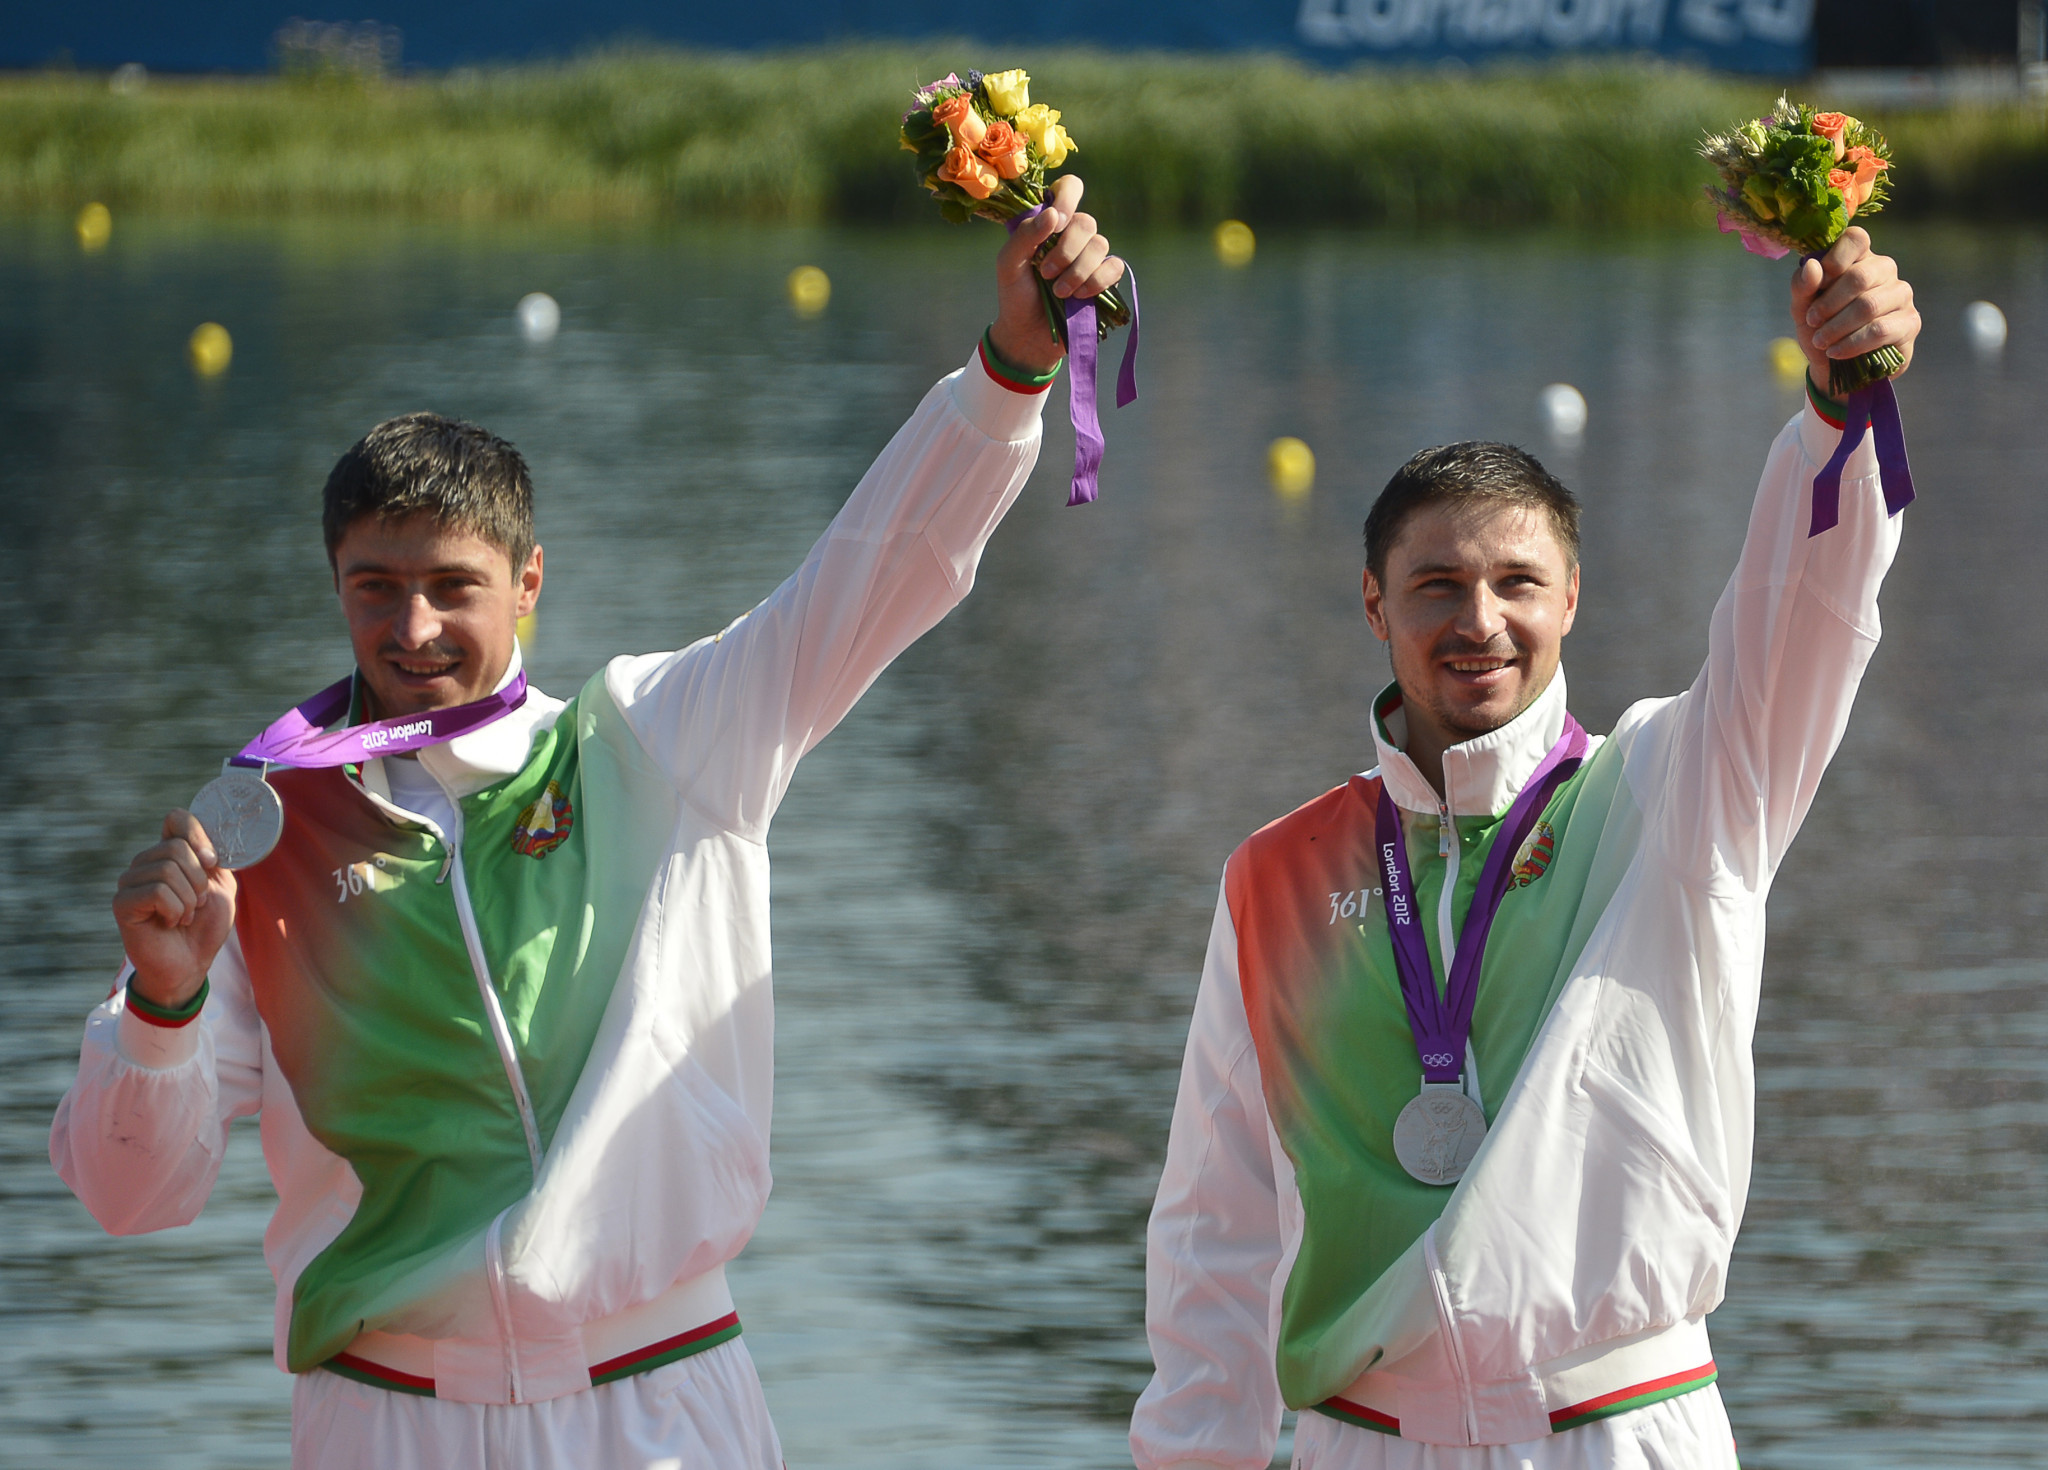 As well as gold at the 2008 Beijing Olympics, Aliaksandr Bahdanovich, right, won silver at London 2012 alongside Andrei Bahdanovich ©Getty Images